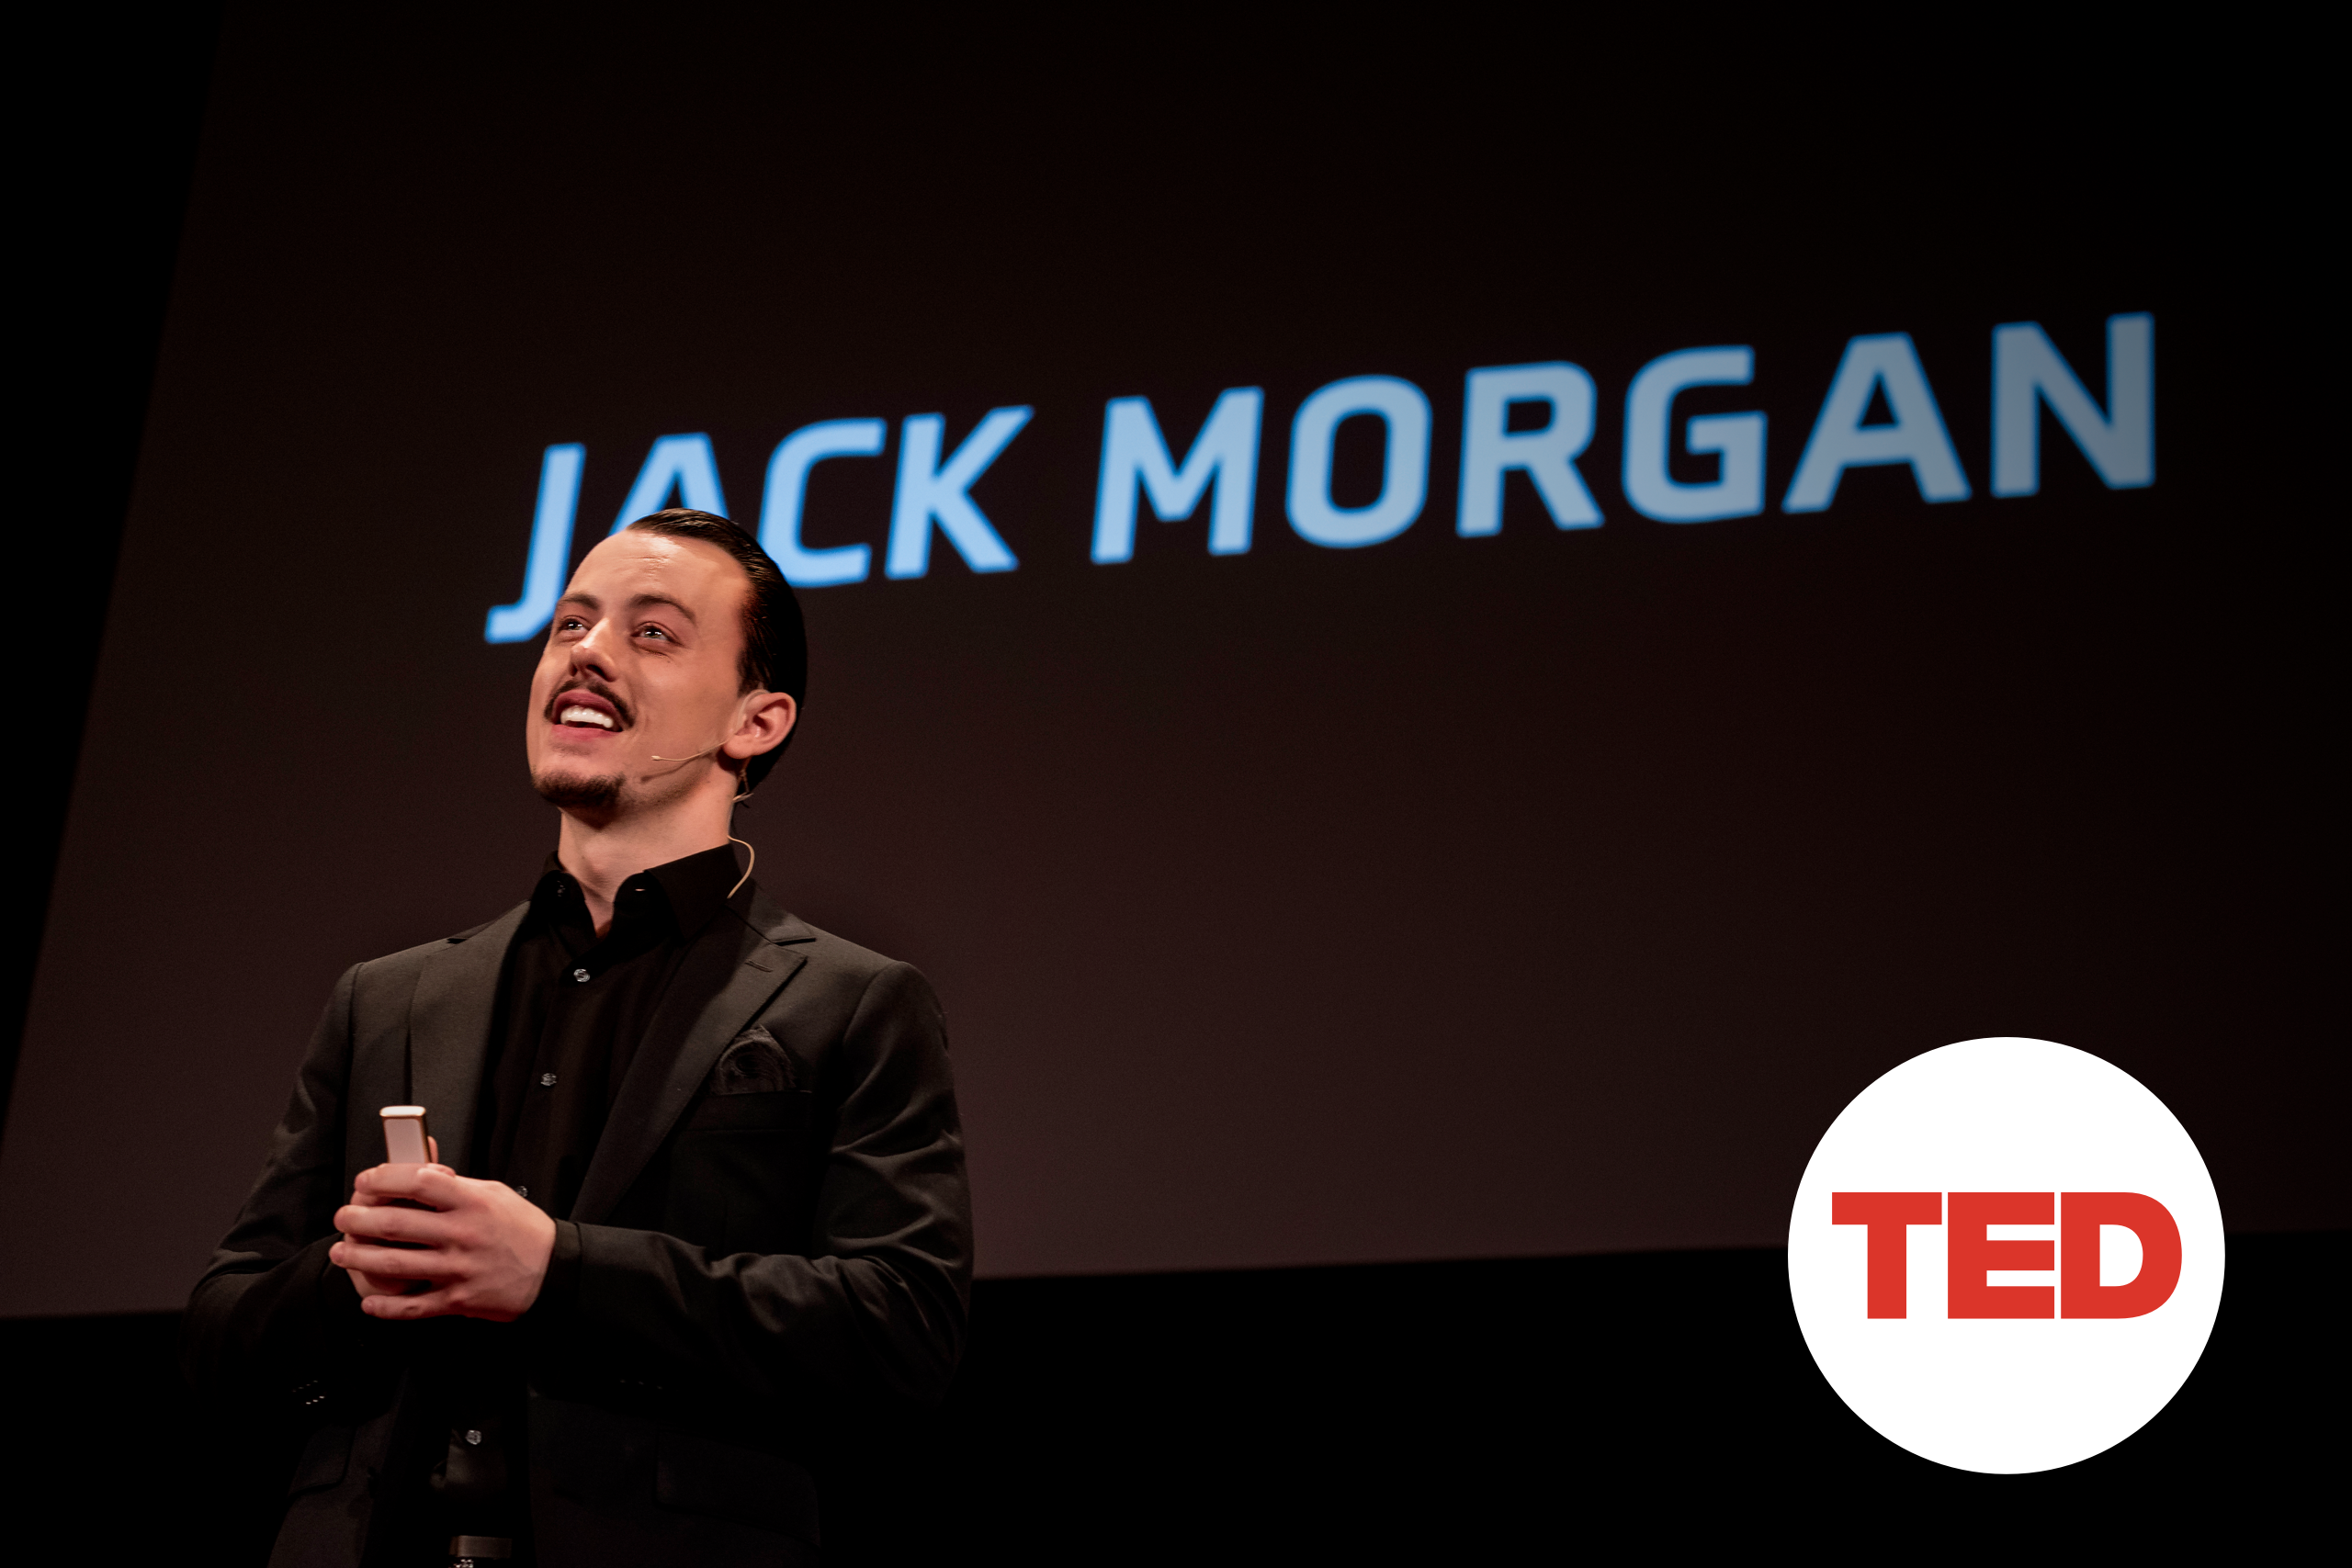 Jack Morgan TED Talk at TEDxPittsburgh 2019 Duolingo